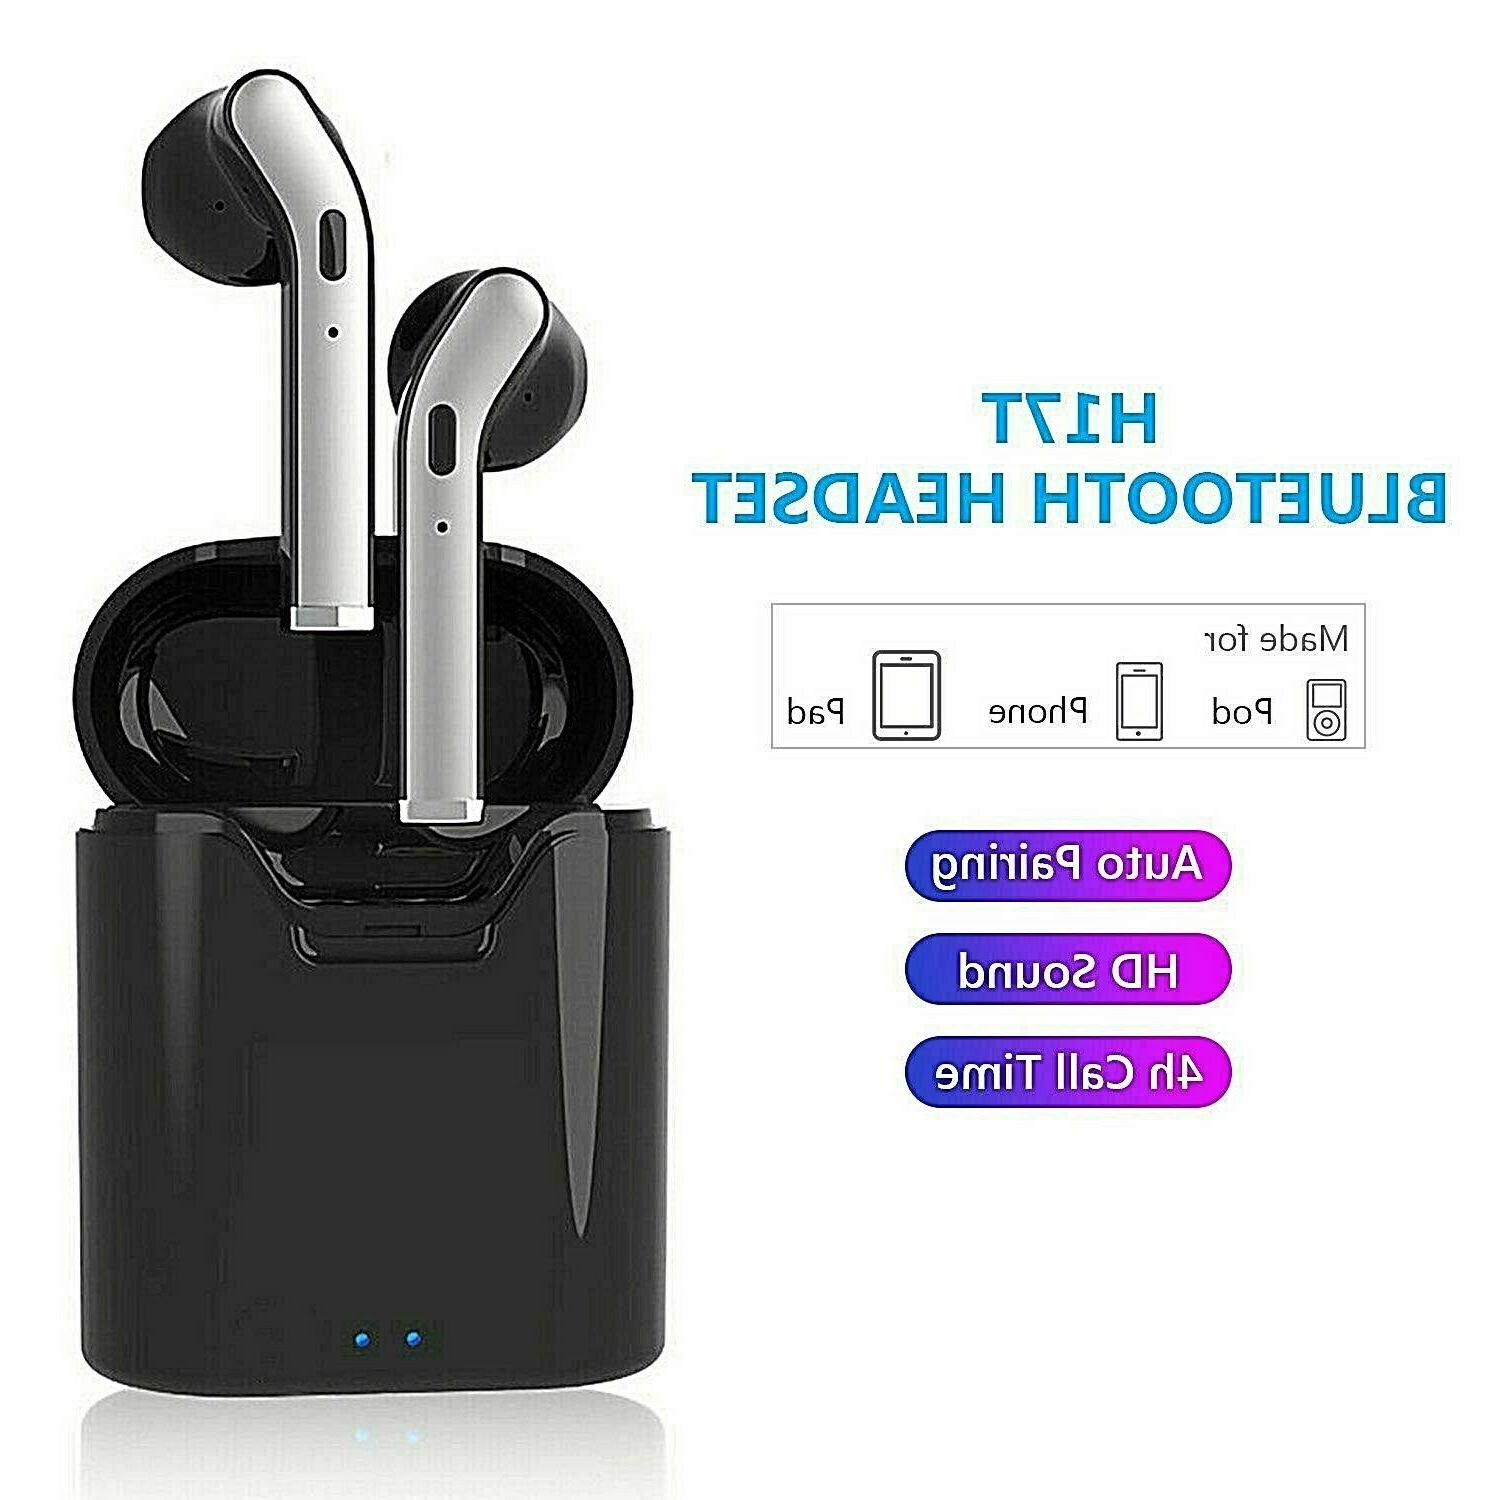 **FAST Bluetooth 5.0 Earbuds Headphones Noise Cancelling!